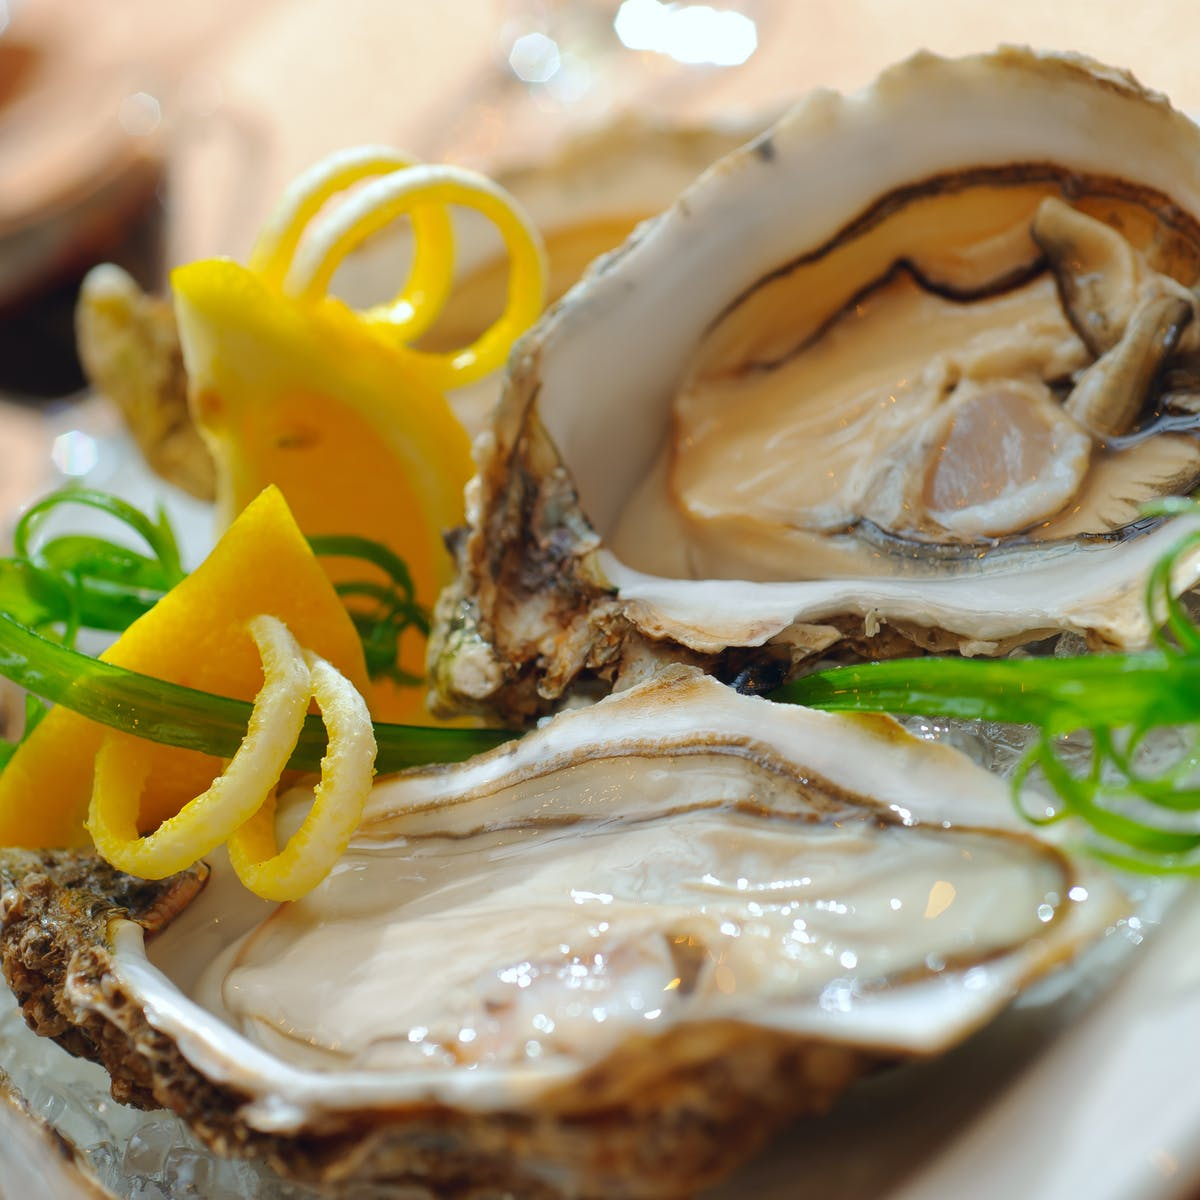 Why you may never eat raw oysters again